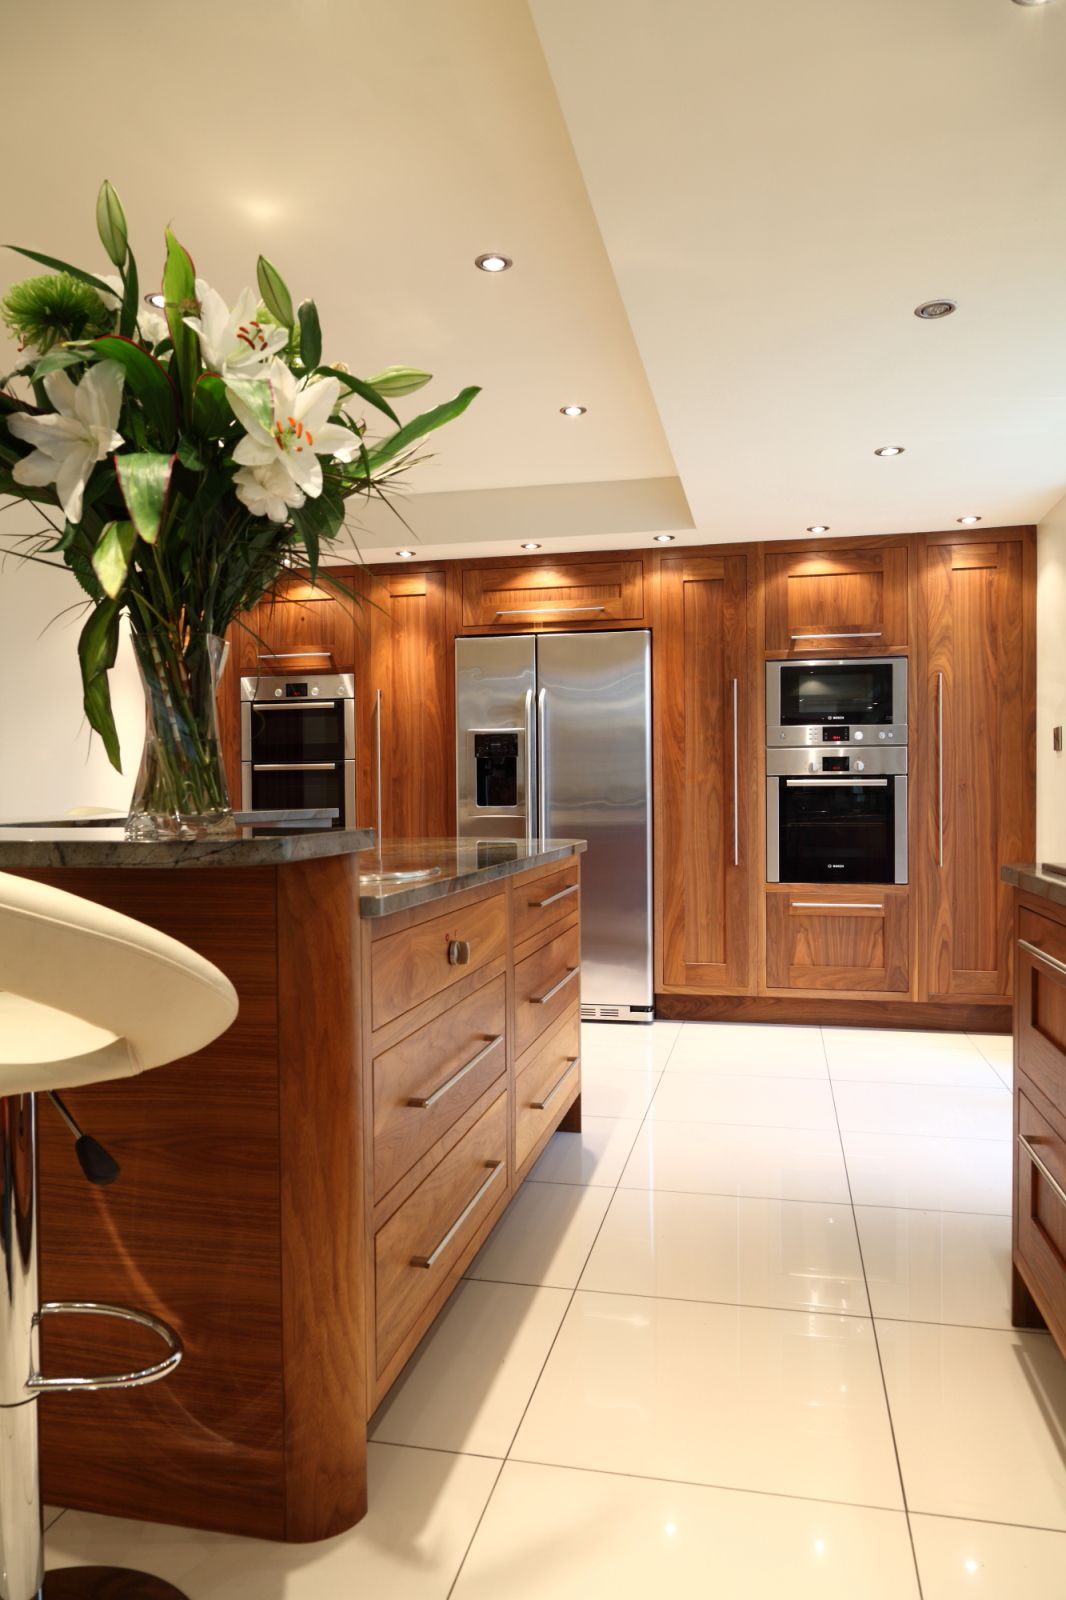 Wall To Wall And Floor To Ceiling Black American Walnut Cabinets With 30mm Fashion Blue Granite Wo With Images Modern Walnut Kitchen Walnut Kitchen Walnut Kitchen Cabinets